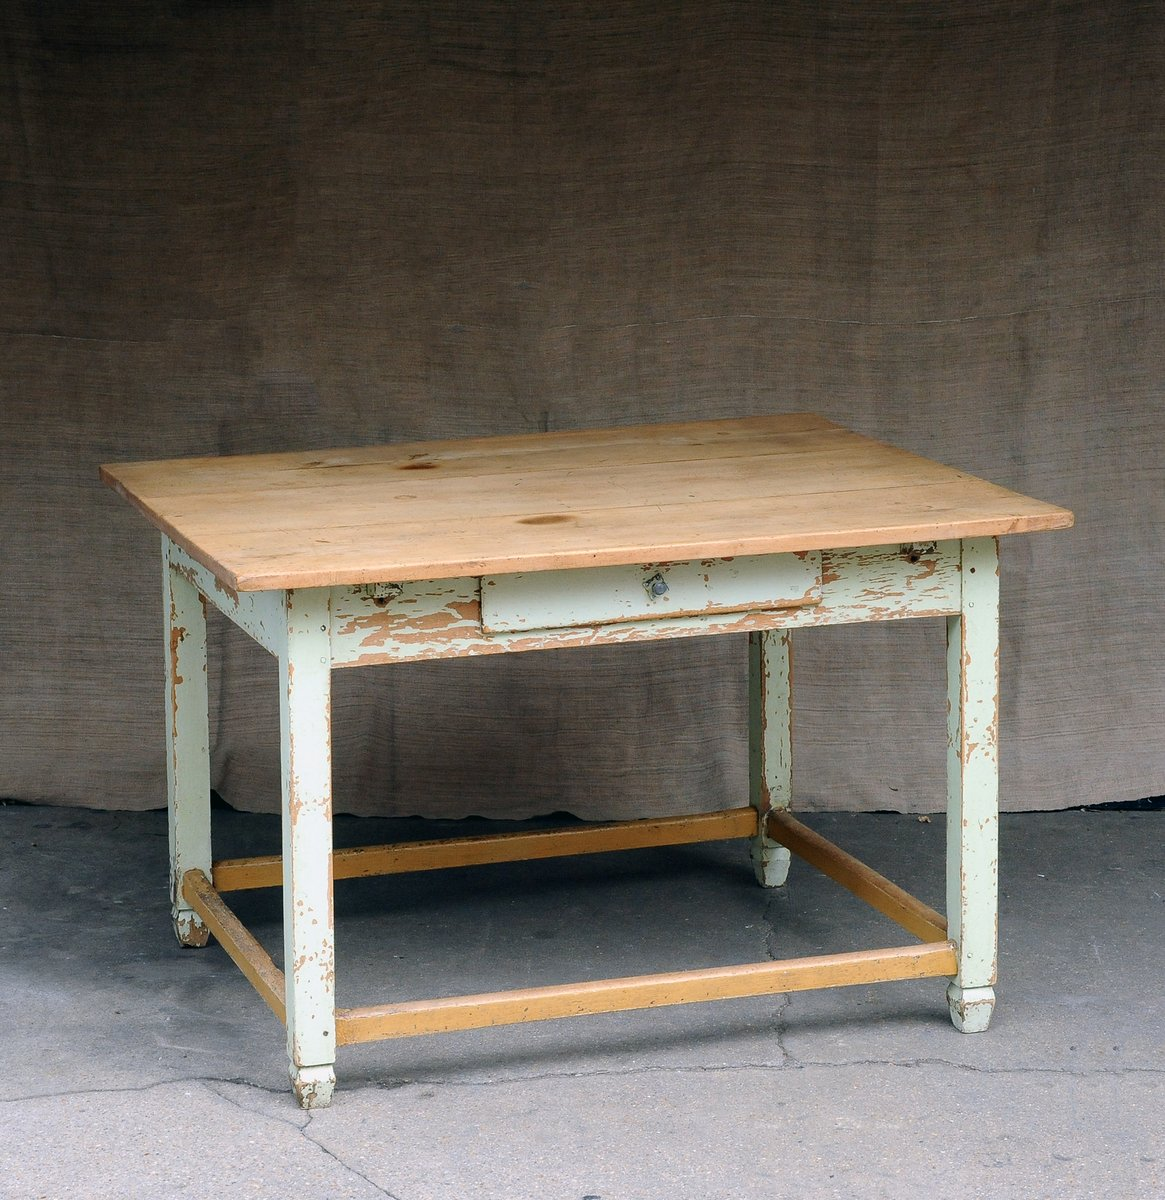 High Quality Vintage Work Bench 4. $1,855.00. Price Per Piece